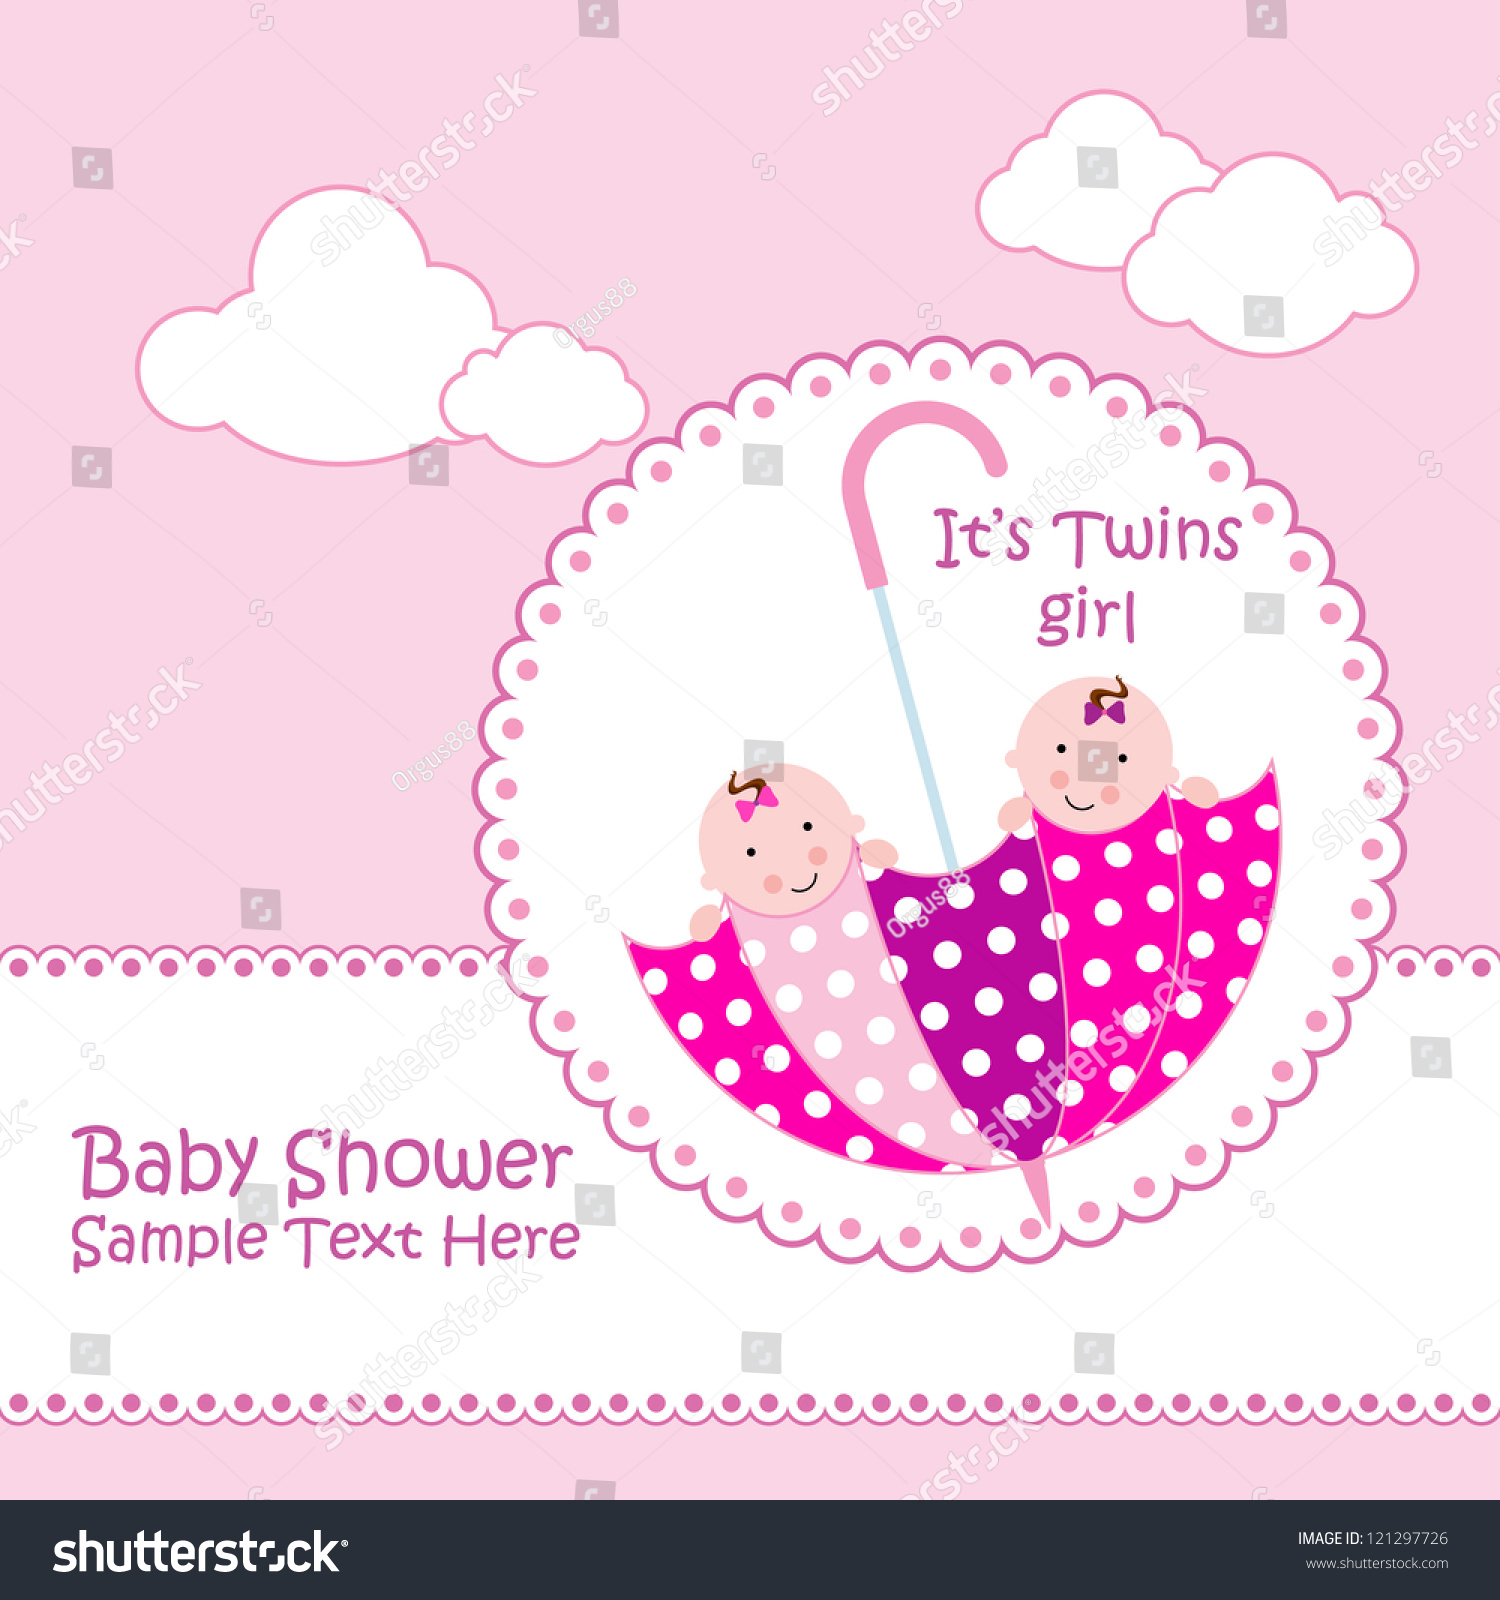 Baby boy arrival card vector by leonart image 600444 vectorstock - Pics Photos Baby Shower Card With Announcement Twins Wallpaper Gallery Baby Boy Shower Card Arrival